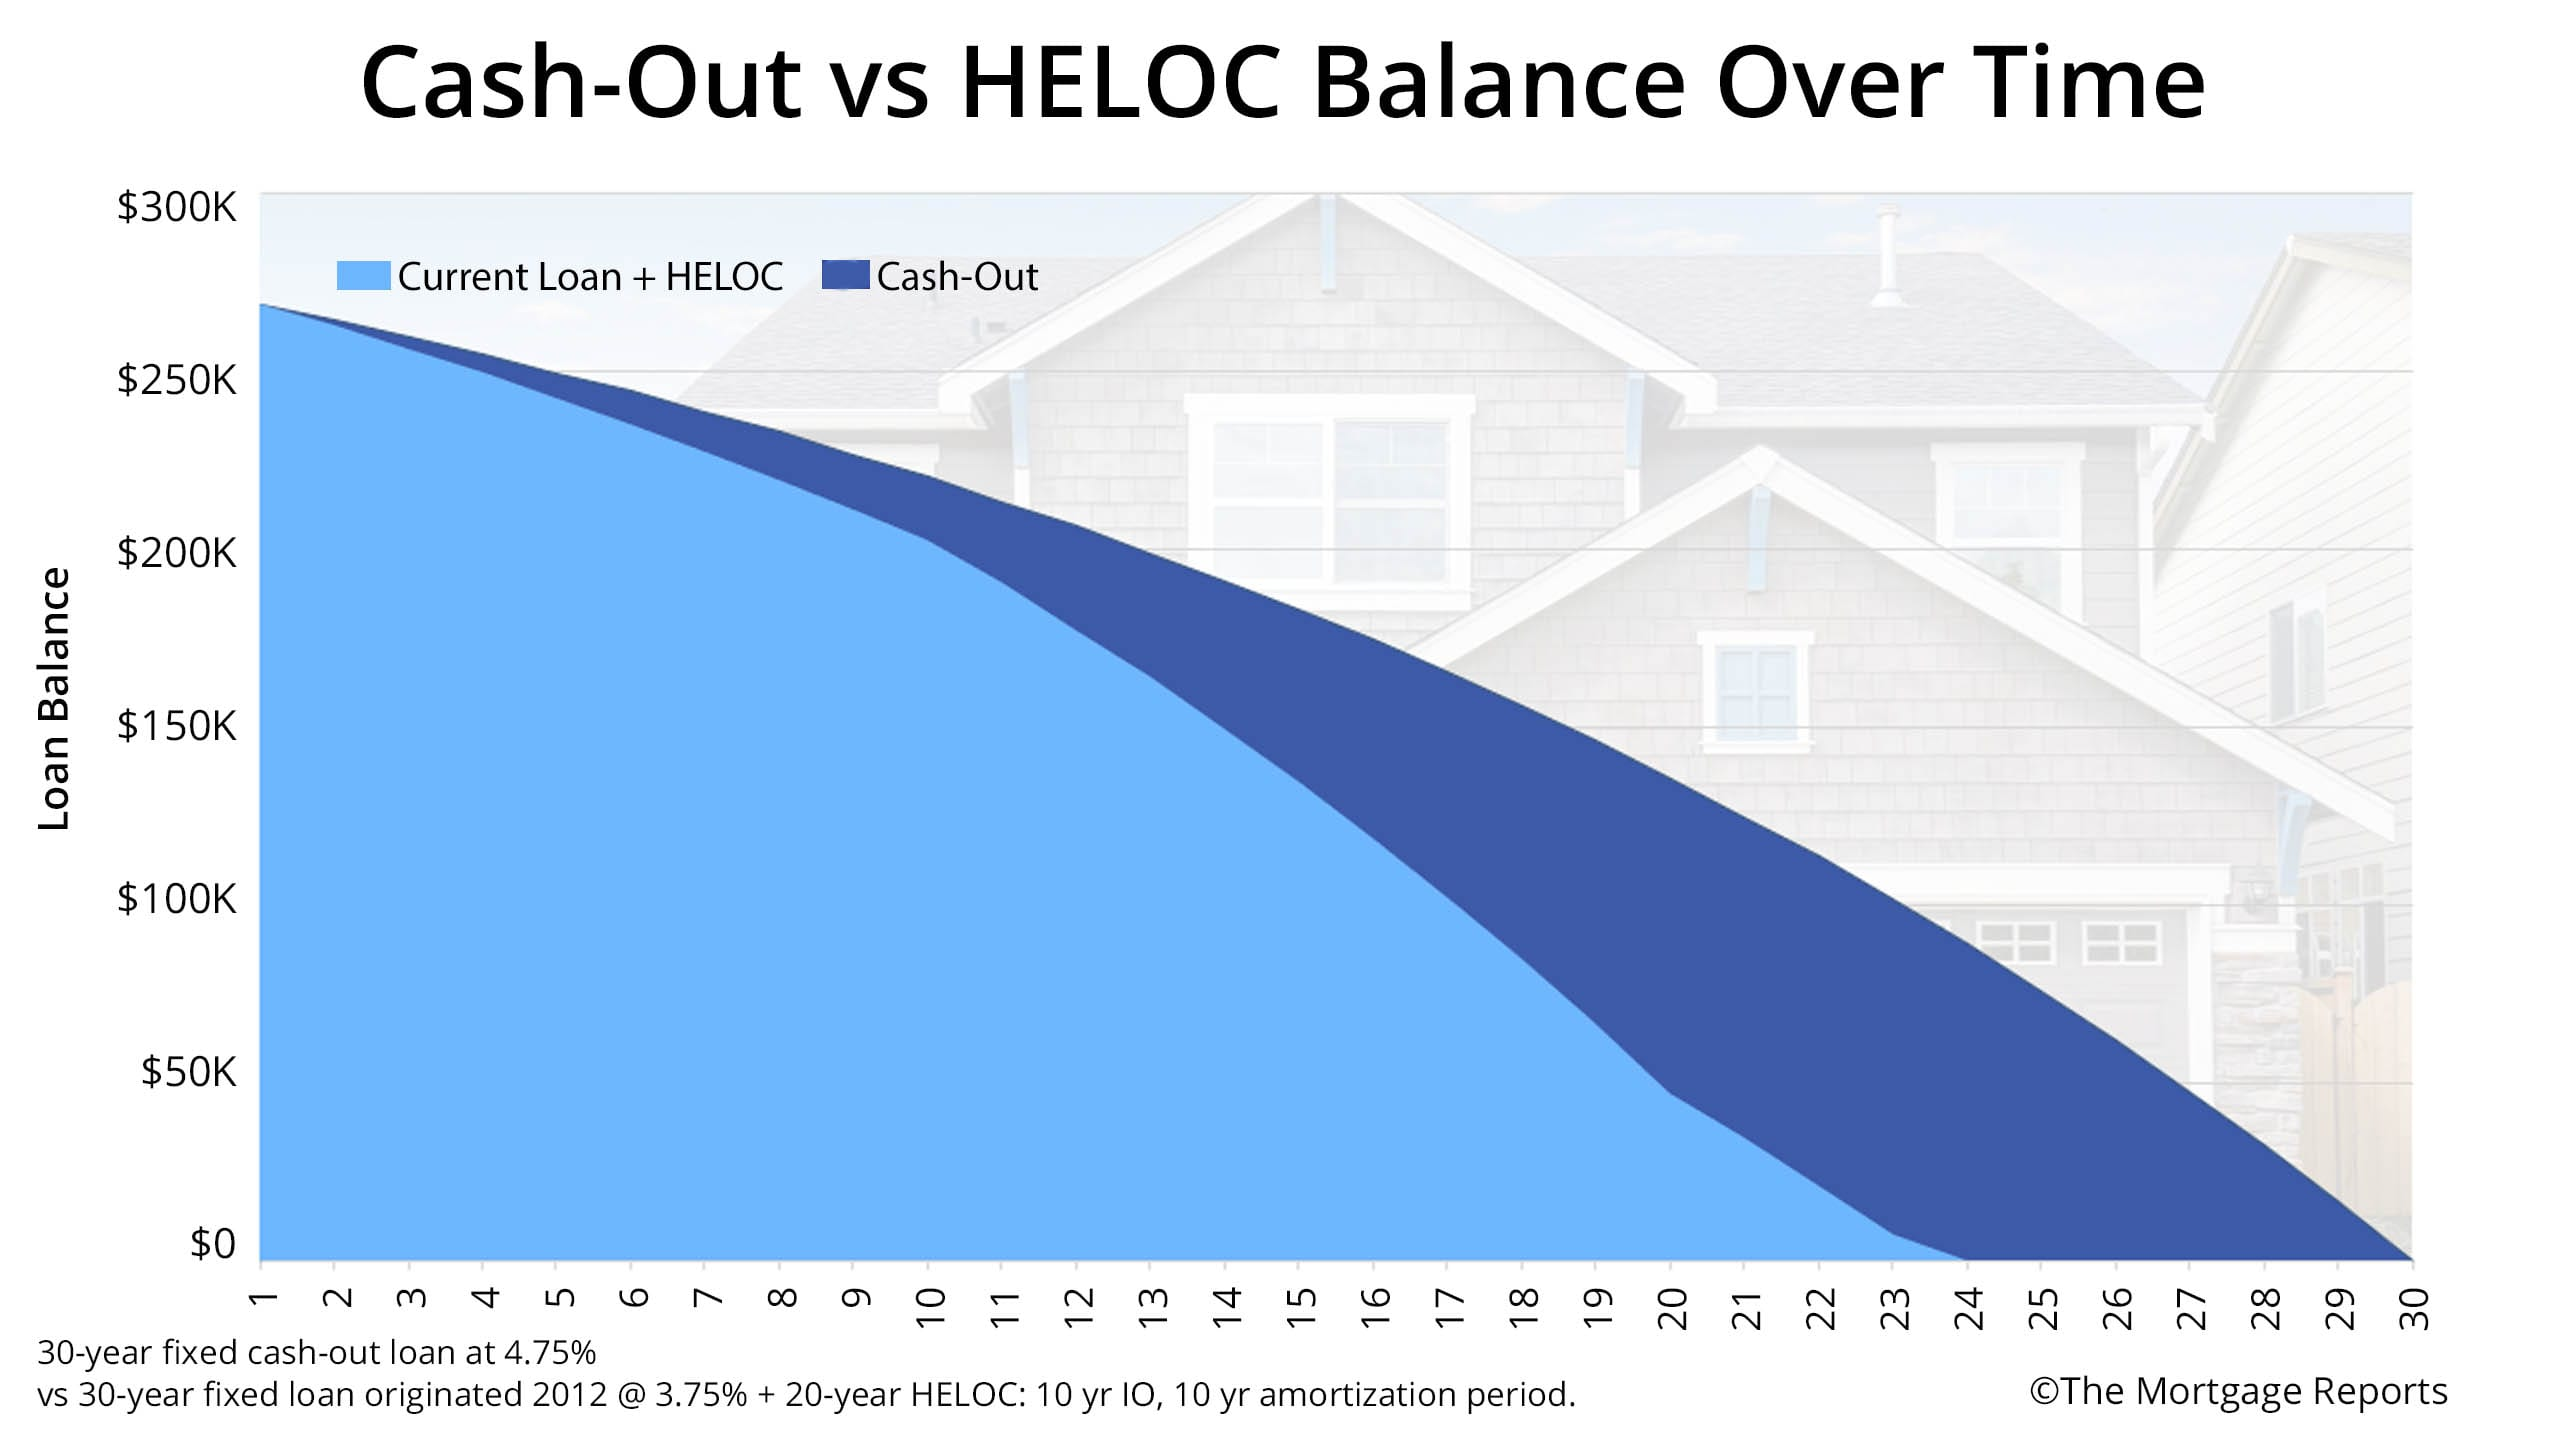 Cash-Out vs HELOC Balances Over Time